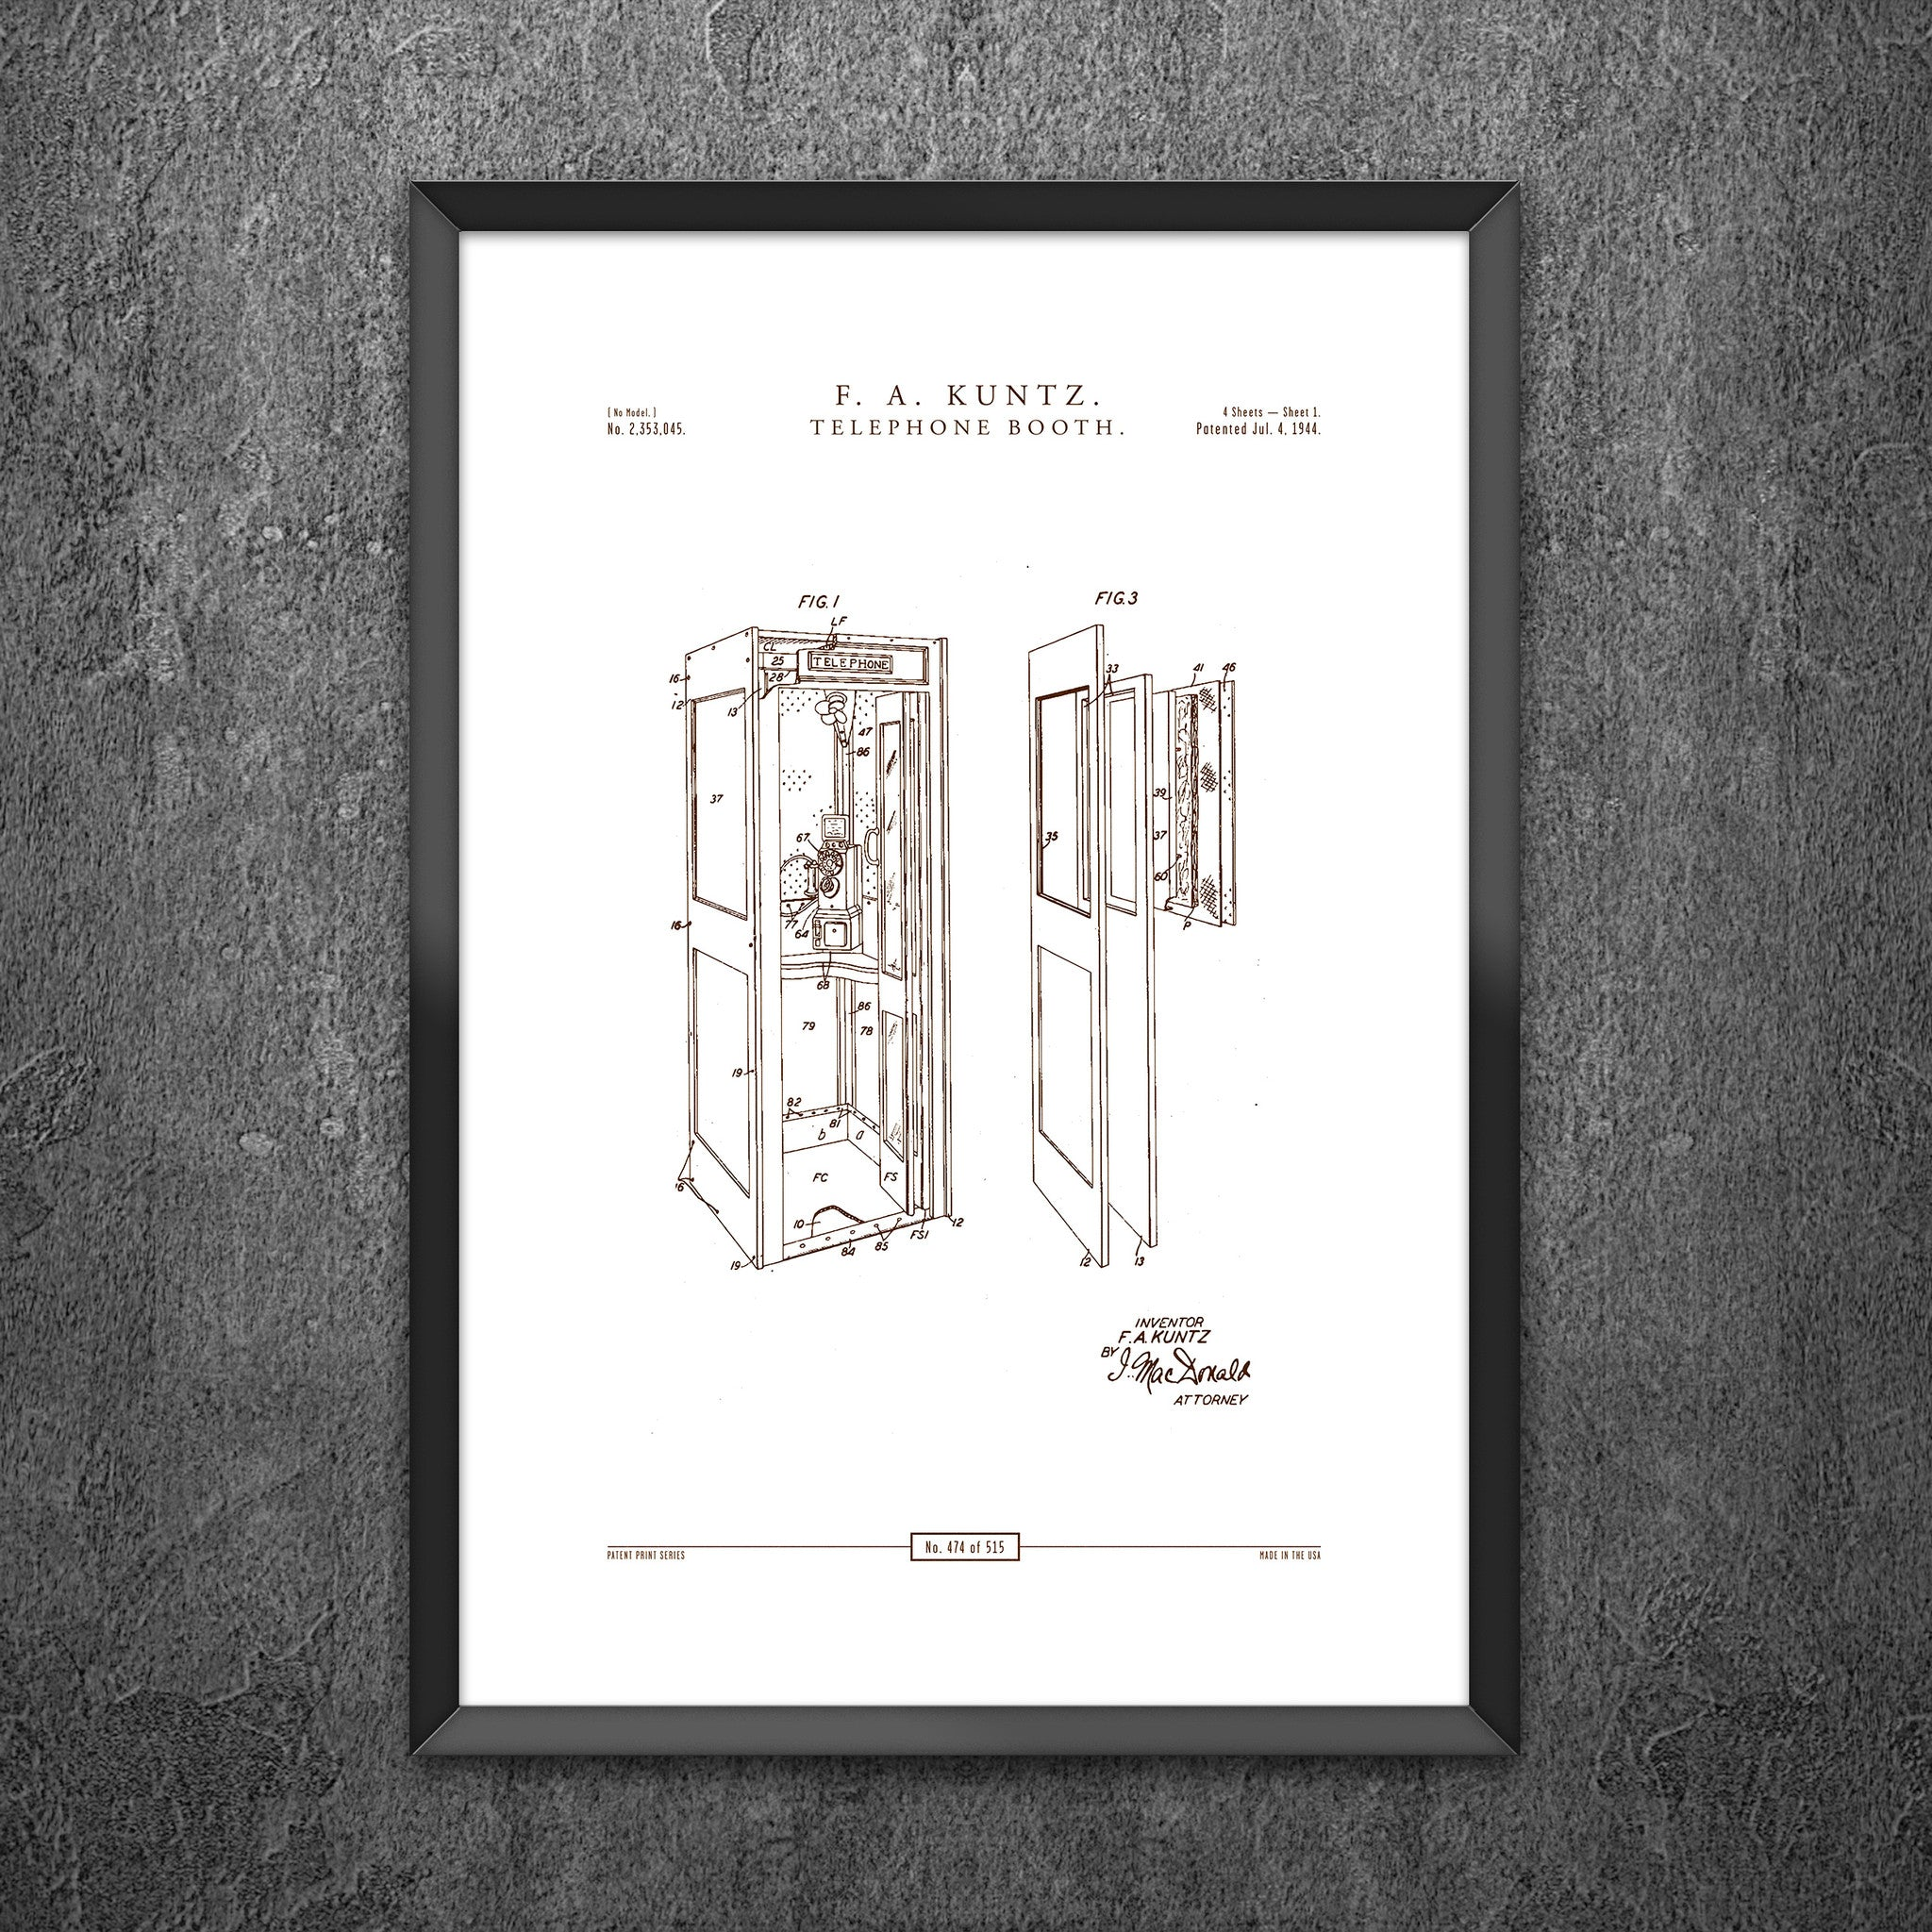 No 474 - Telephone Booth